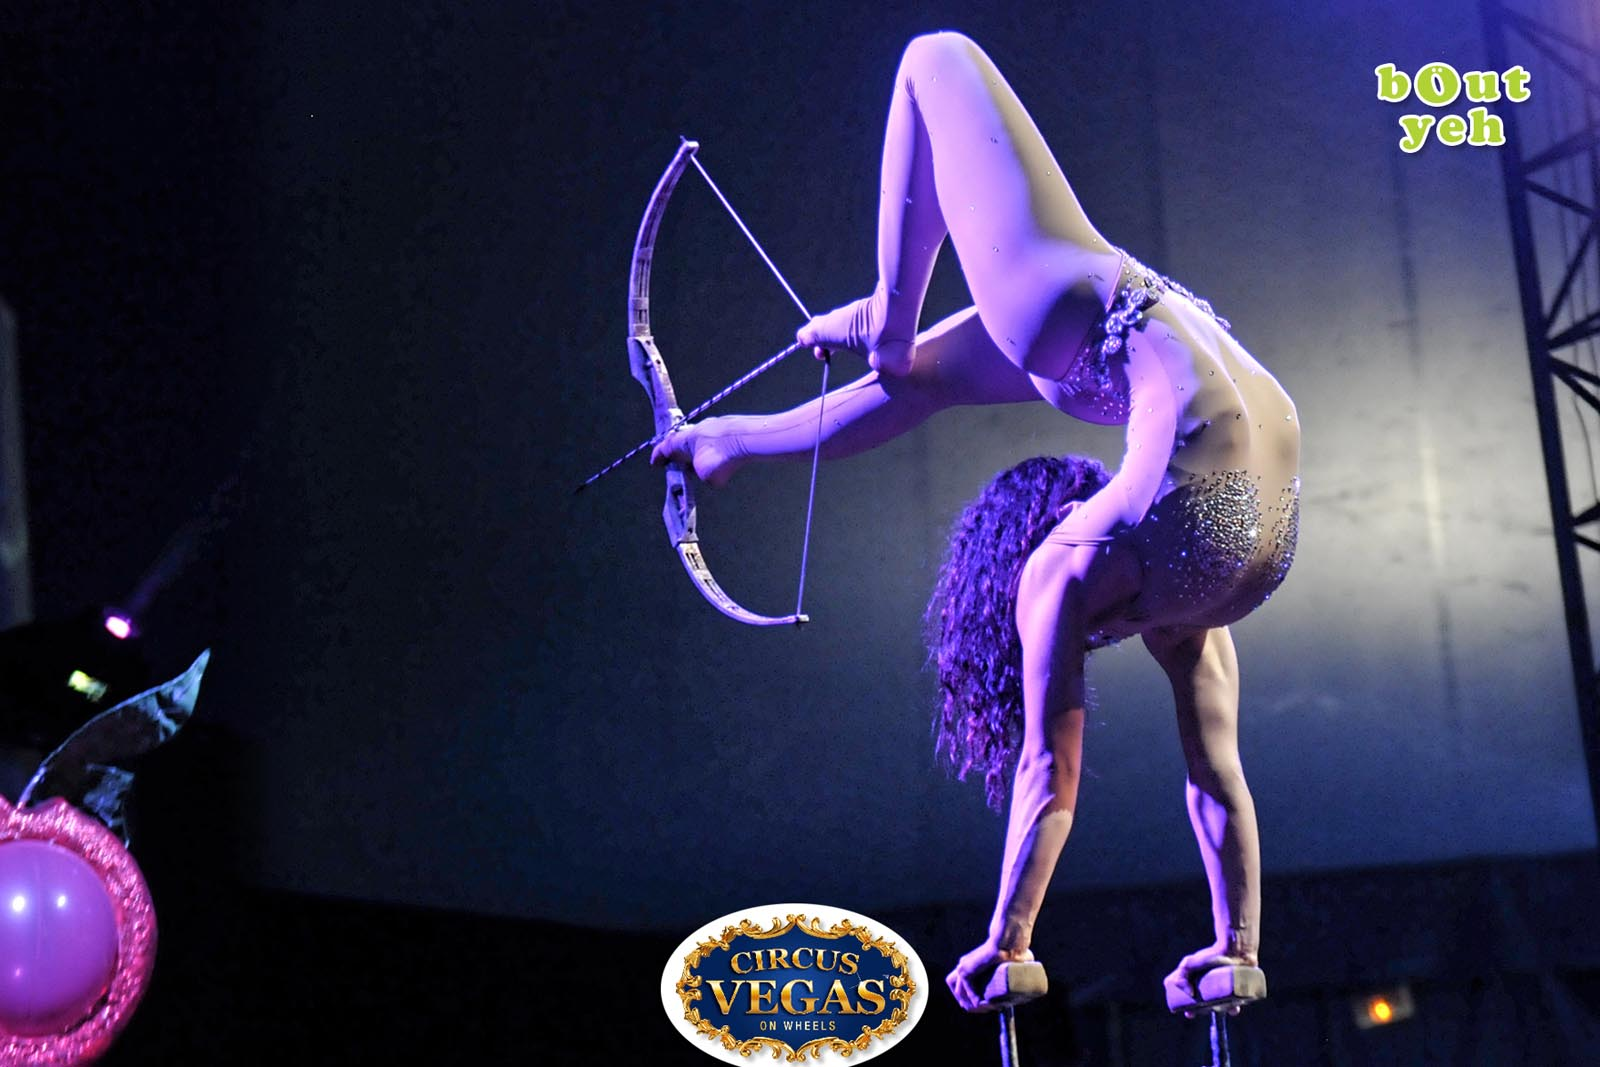 Social Media Marketing Consultants Belfast - Circus Vegas campaign photo of circus acrobat. Photo by Bout Yeh used in a Social Media Marketing campaign across Bout Yeh's Social Media platforms for Circus Vegas On Wheels Ireland